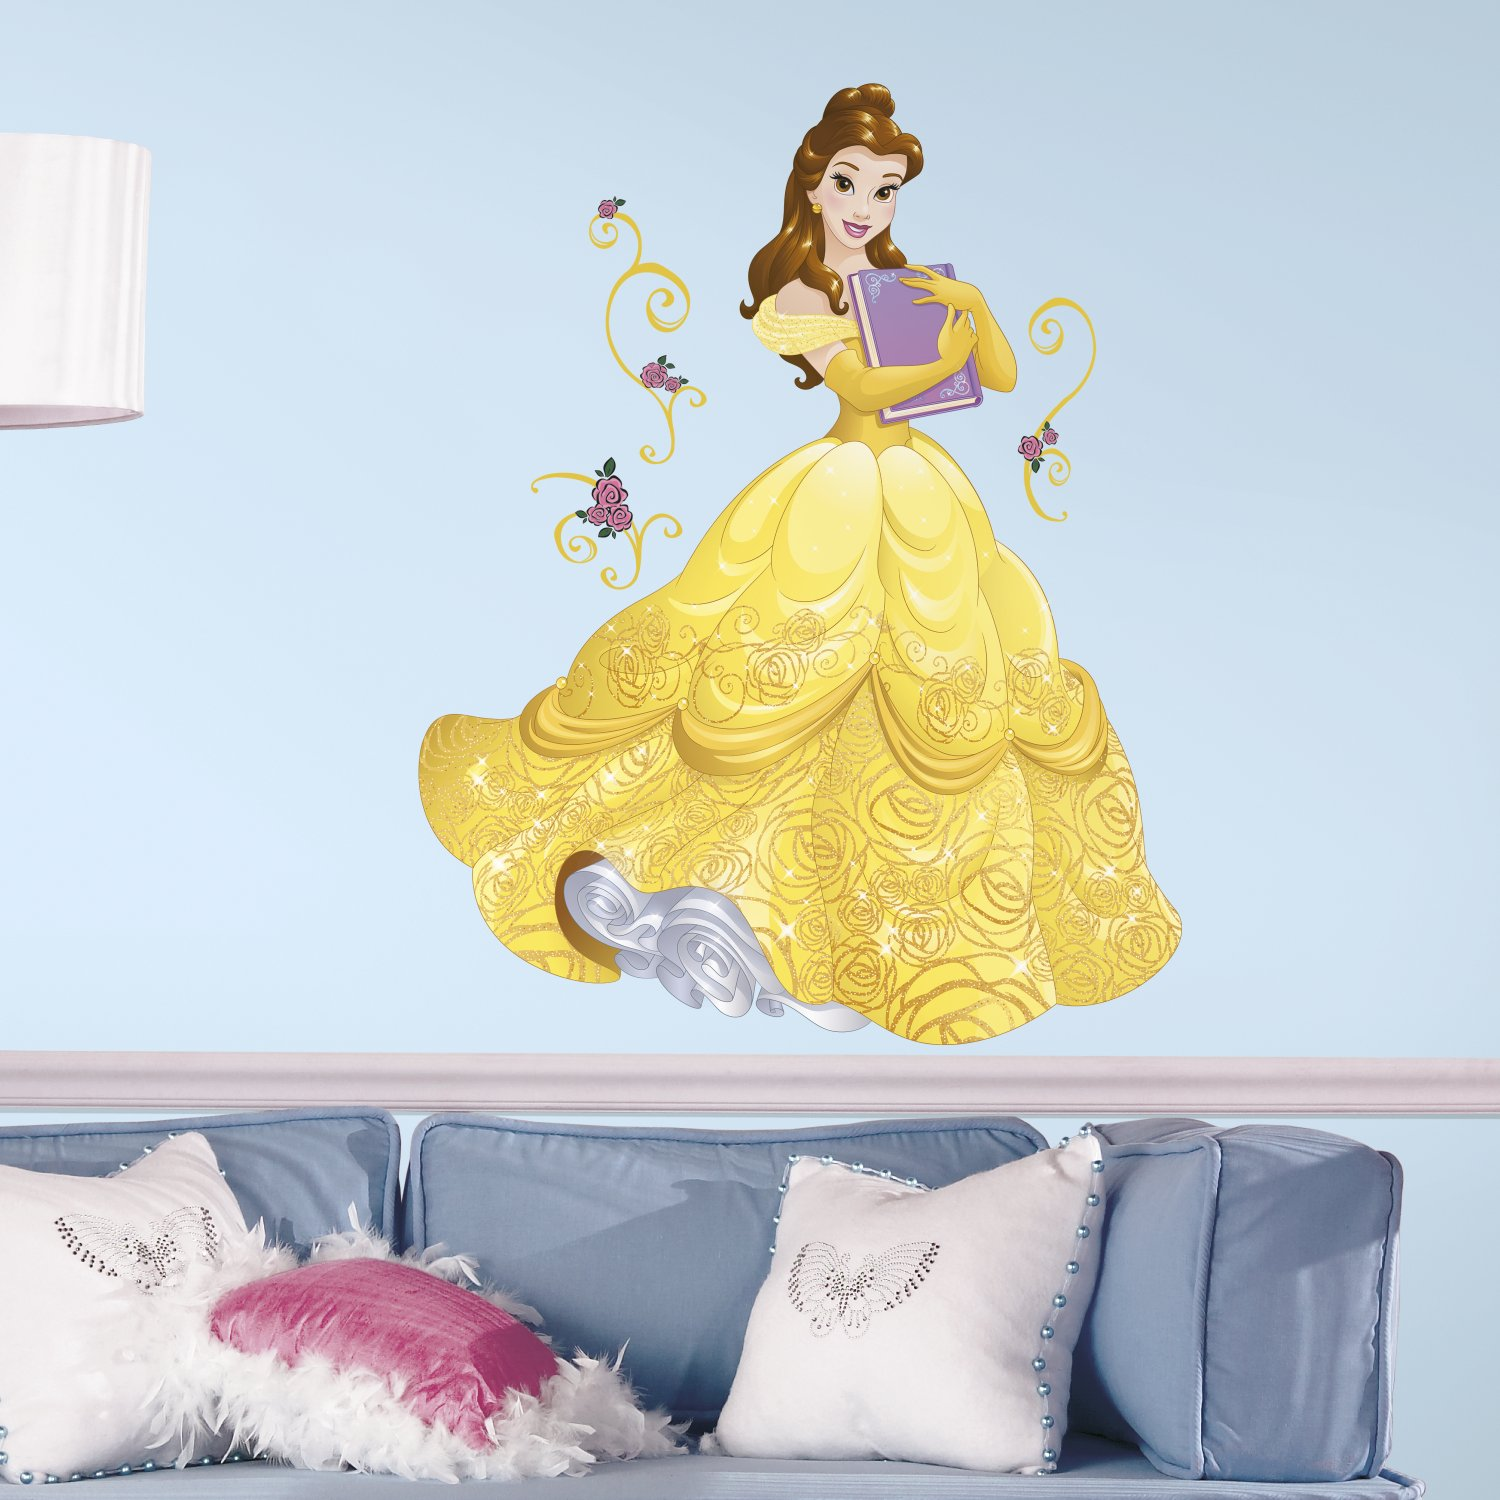 RoomMates Disney Sparkling Belle Peel and Stick Giant Wall Decals